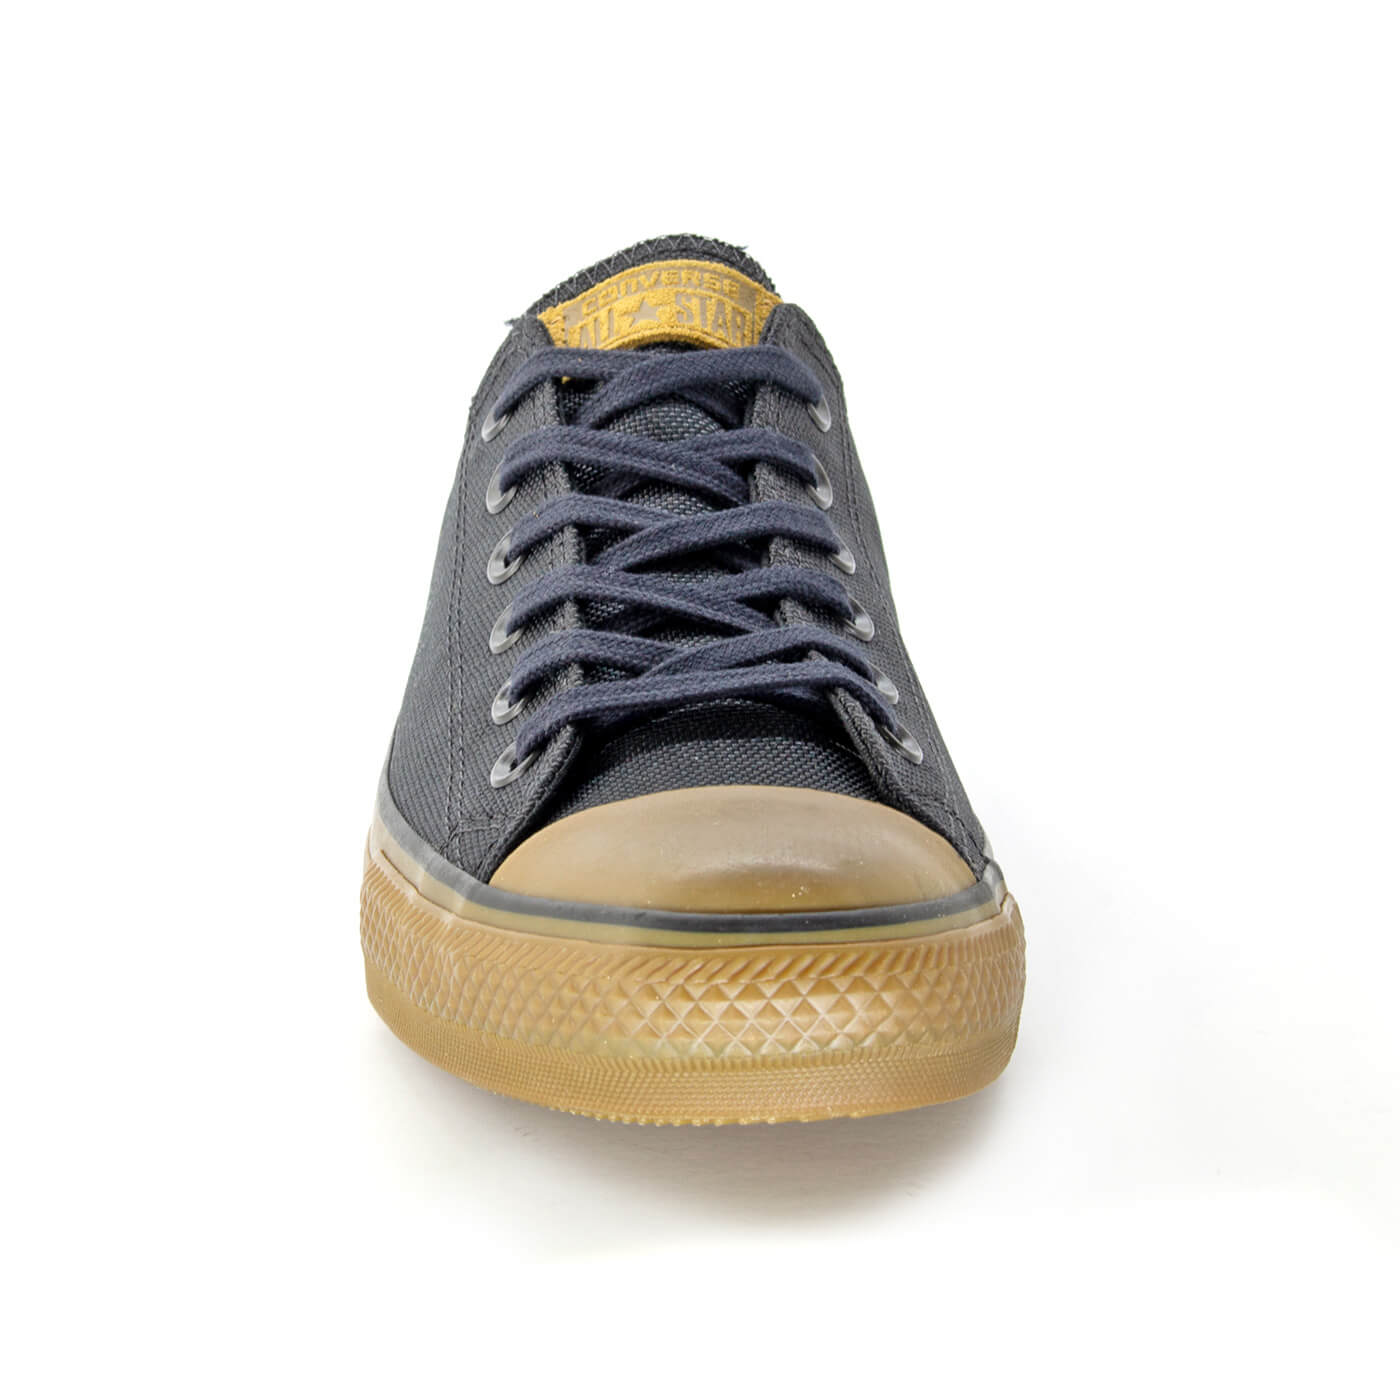 TÊNIS ALL STAR CONVERSE CHUCK TAYLOR - CT0804